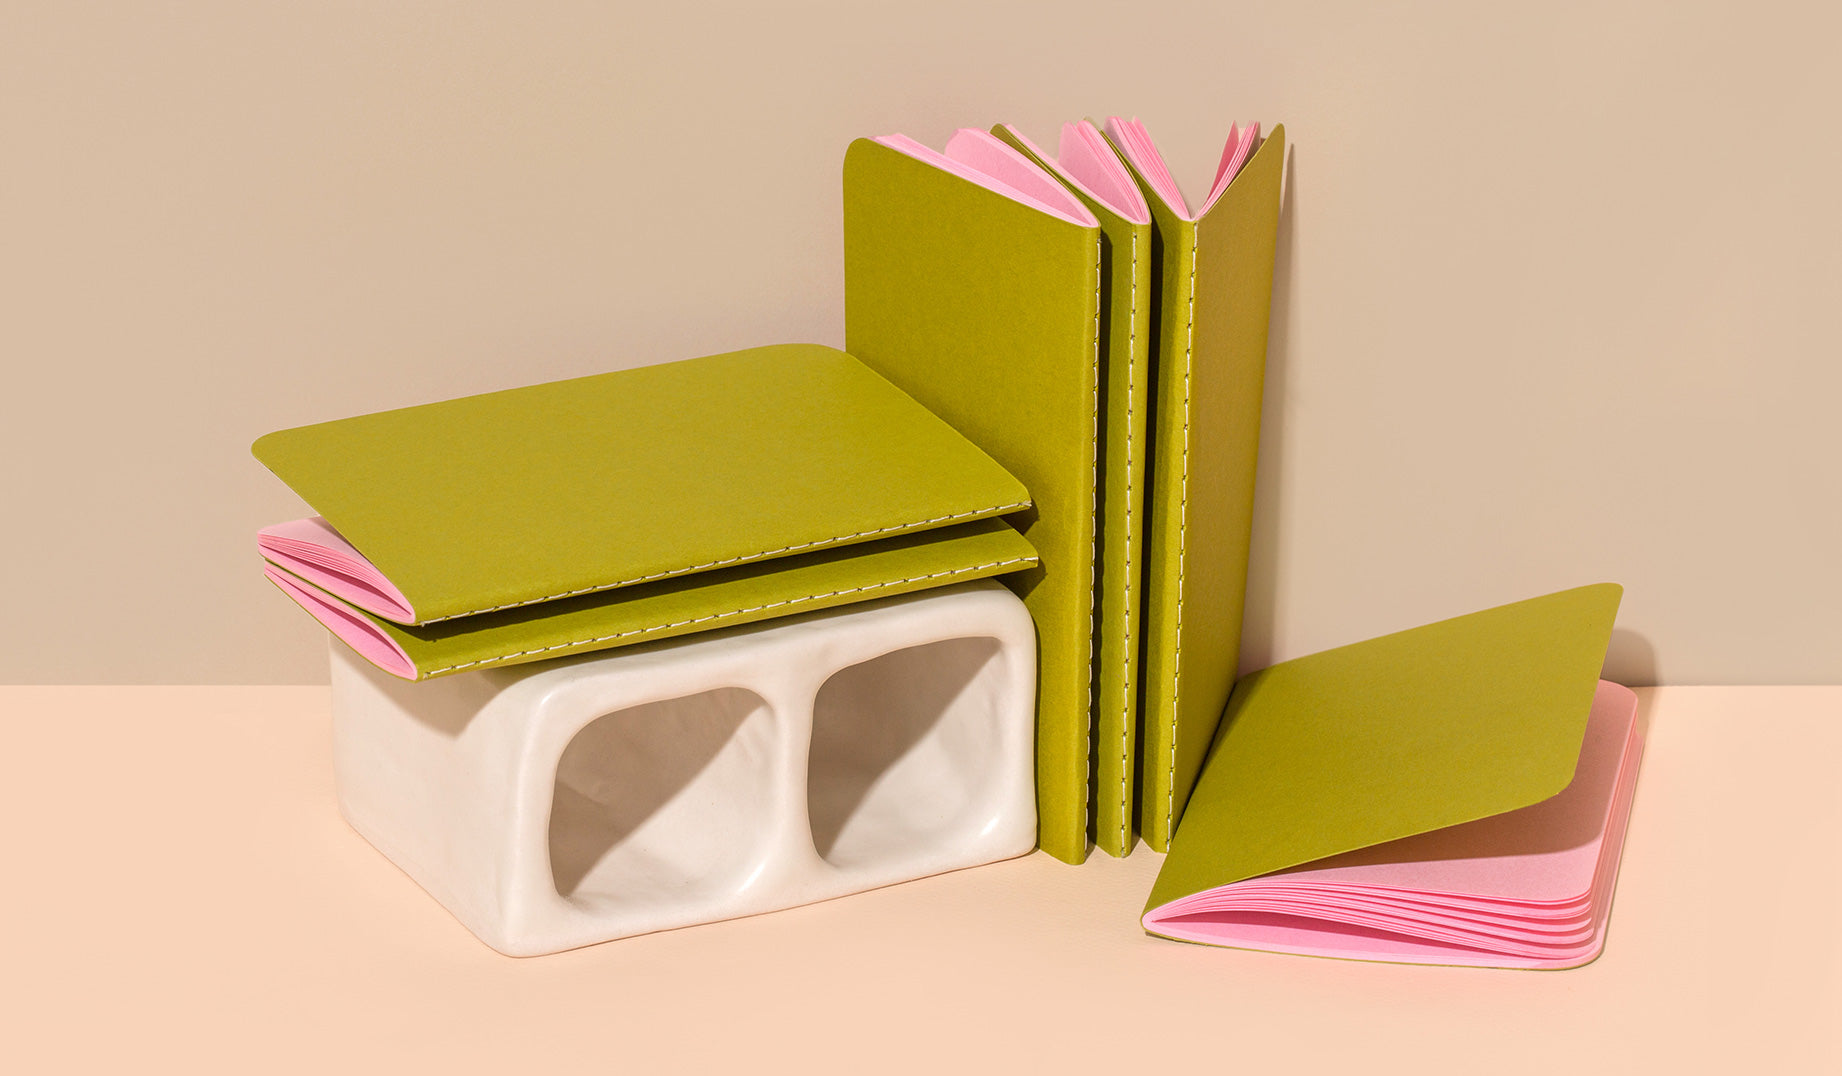 Our most portable notebook in a range of premium colored papers, featuring our signature saddle sewn binding style.